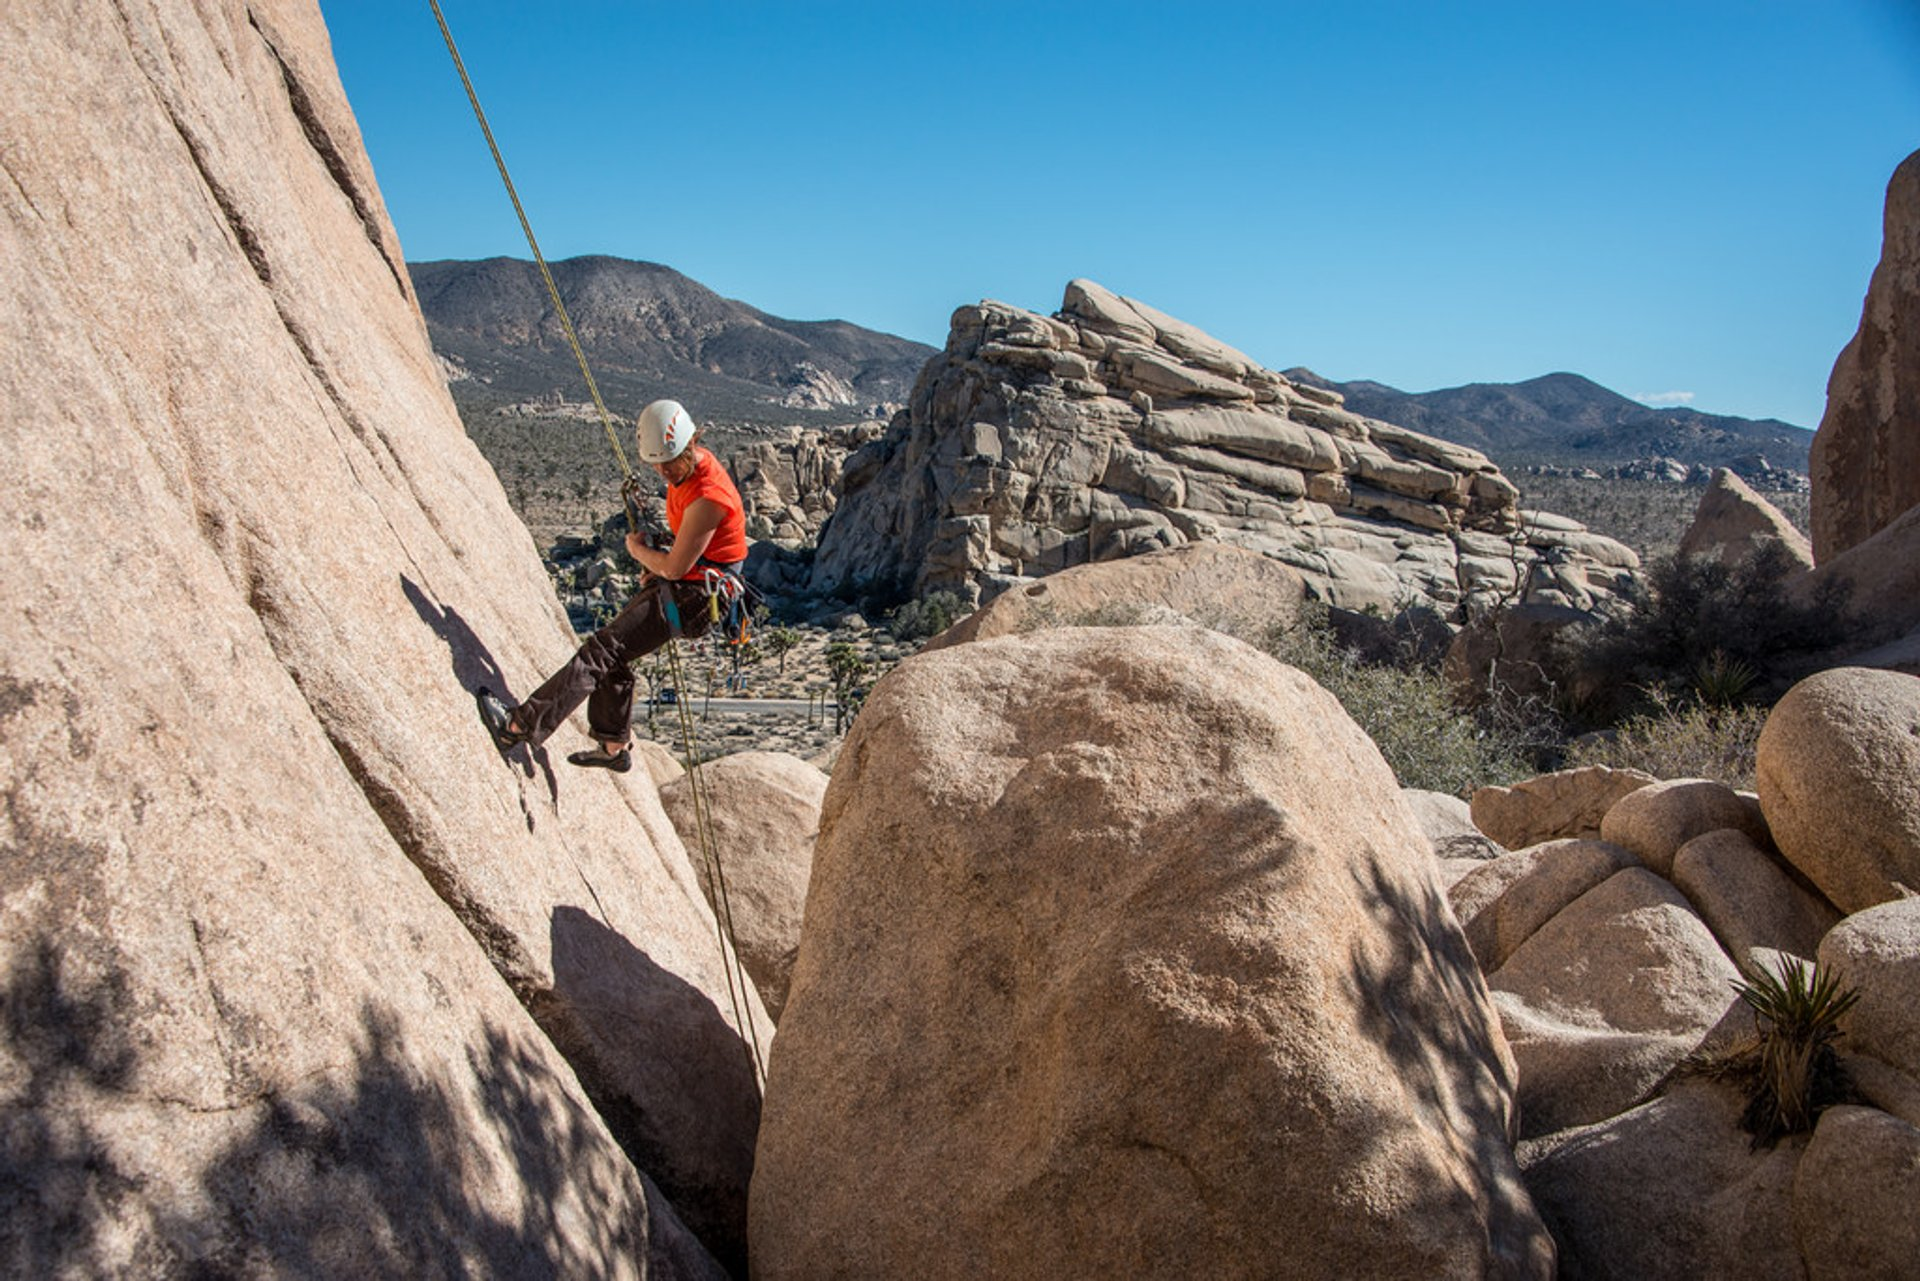 Joshua Tree Rock Climbing in Los Angeles 2020 - Best Time